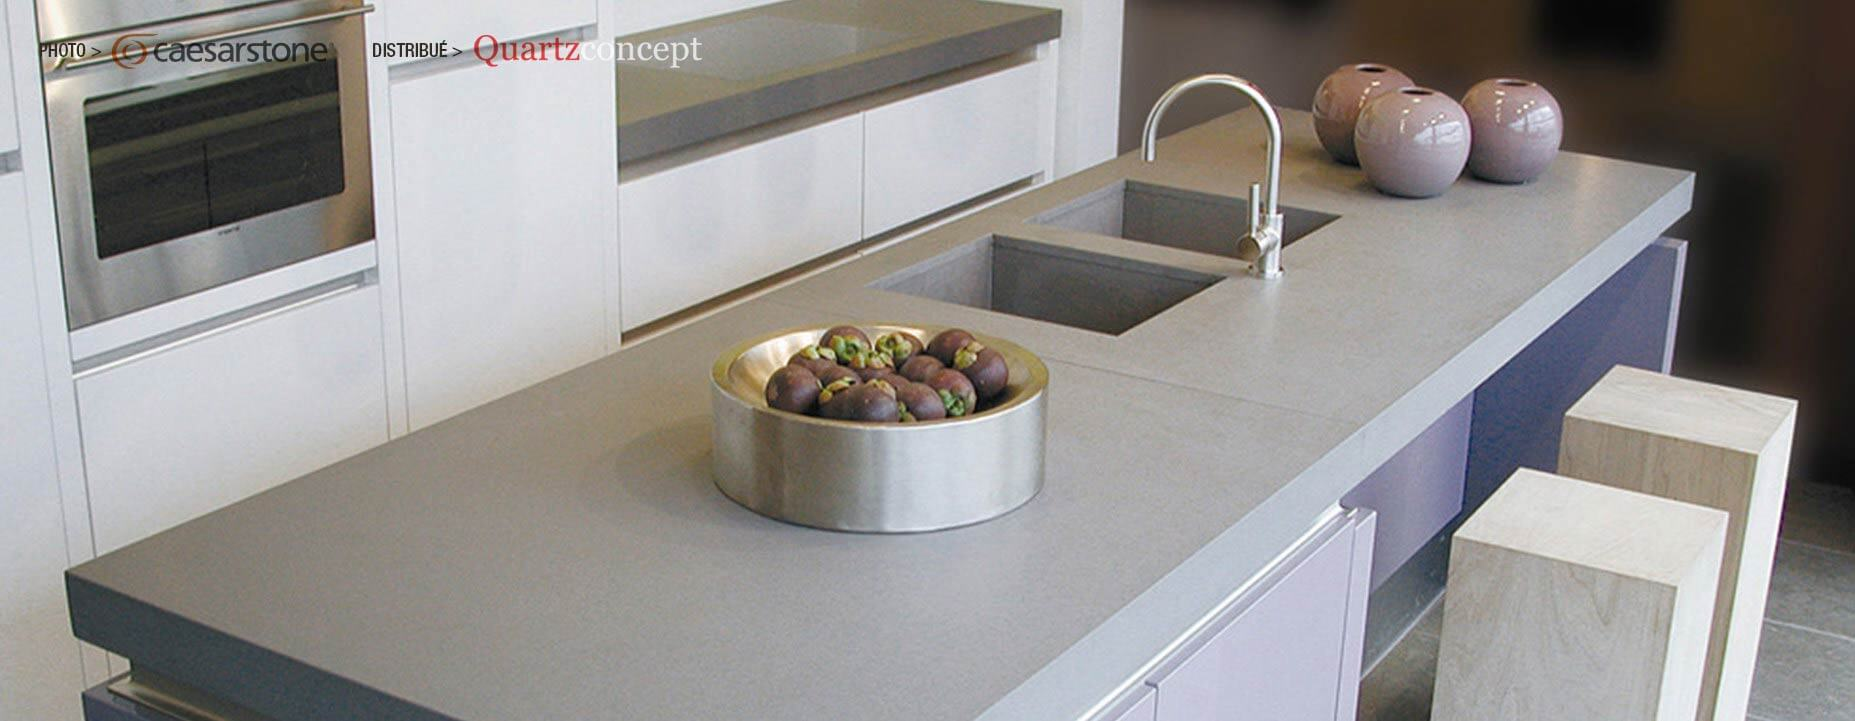 Quartz Caesarstone couleur 2003 concrete